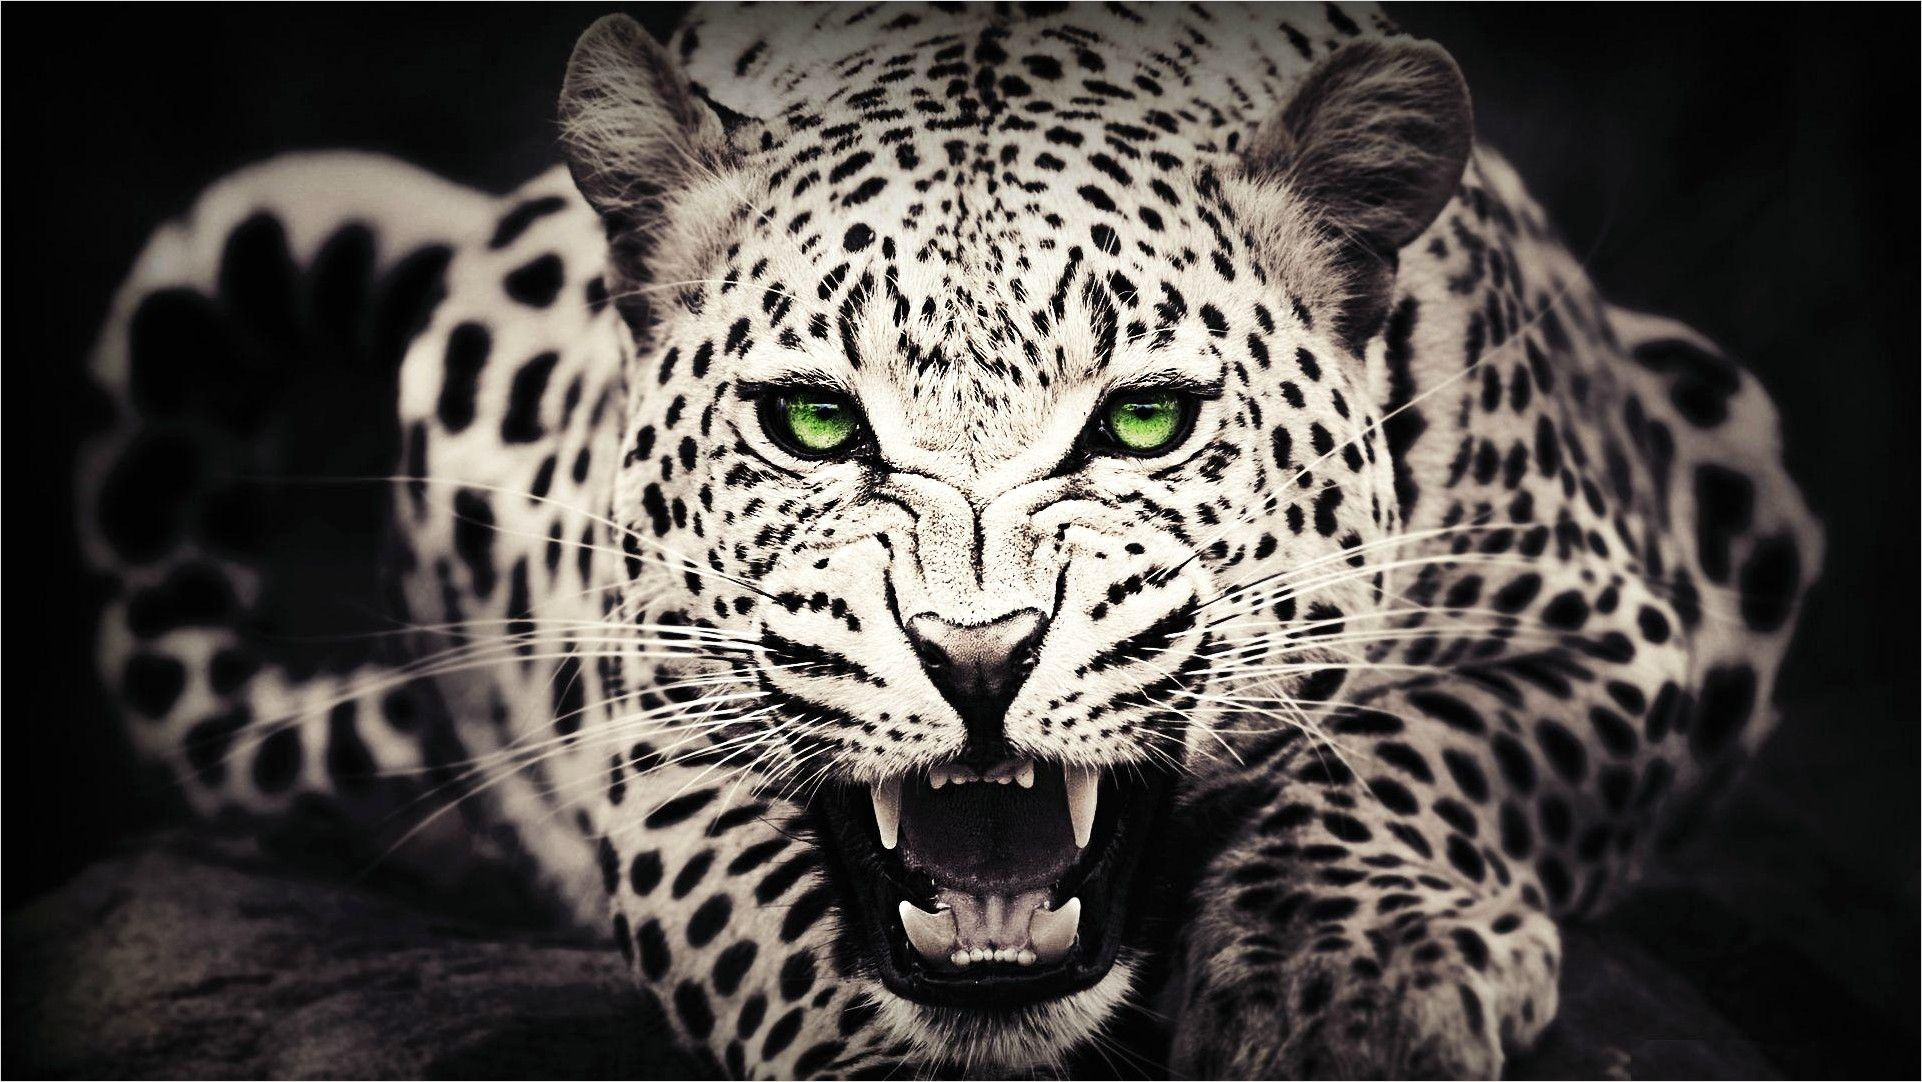 4k Animal Wallpaper For Laptop In 2020 Cheetah Wallpaper Leopard Wallpaper Wild Animal Wallpaper